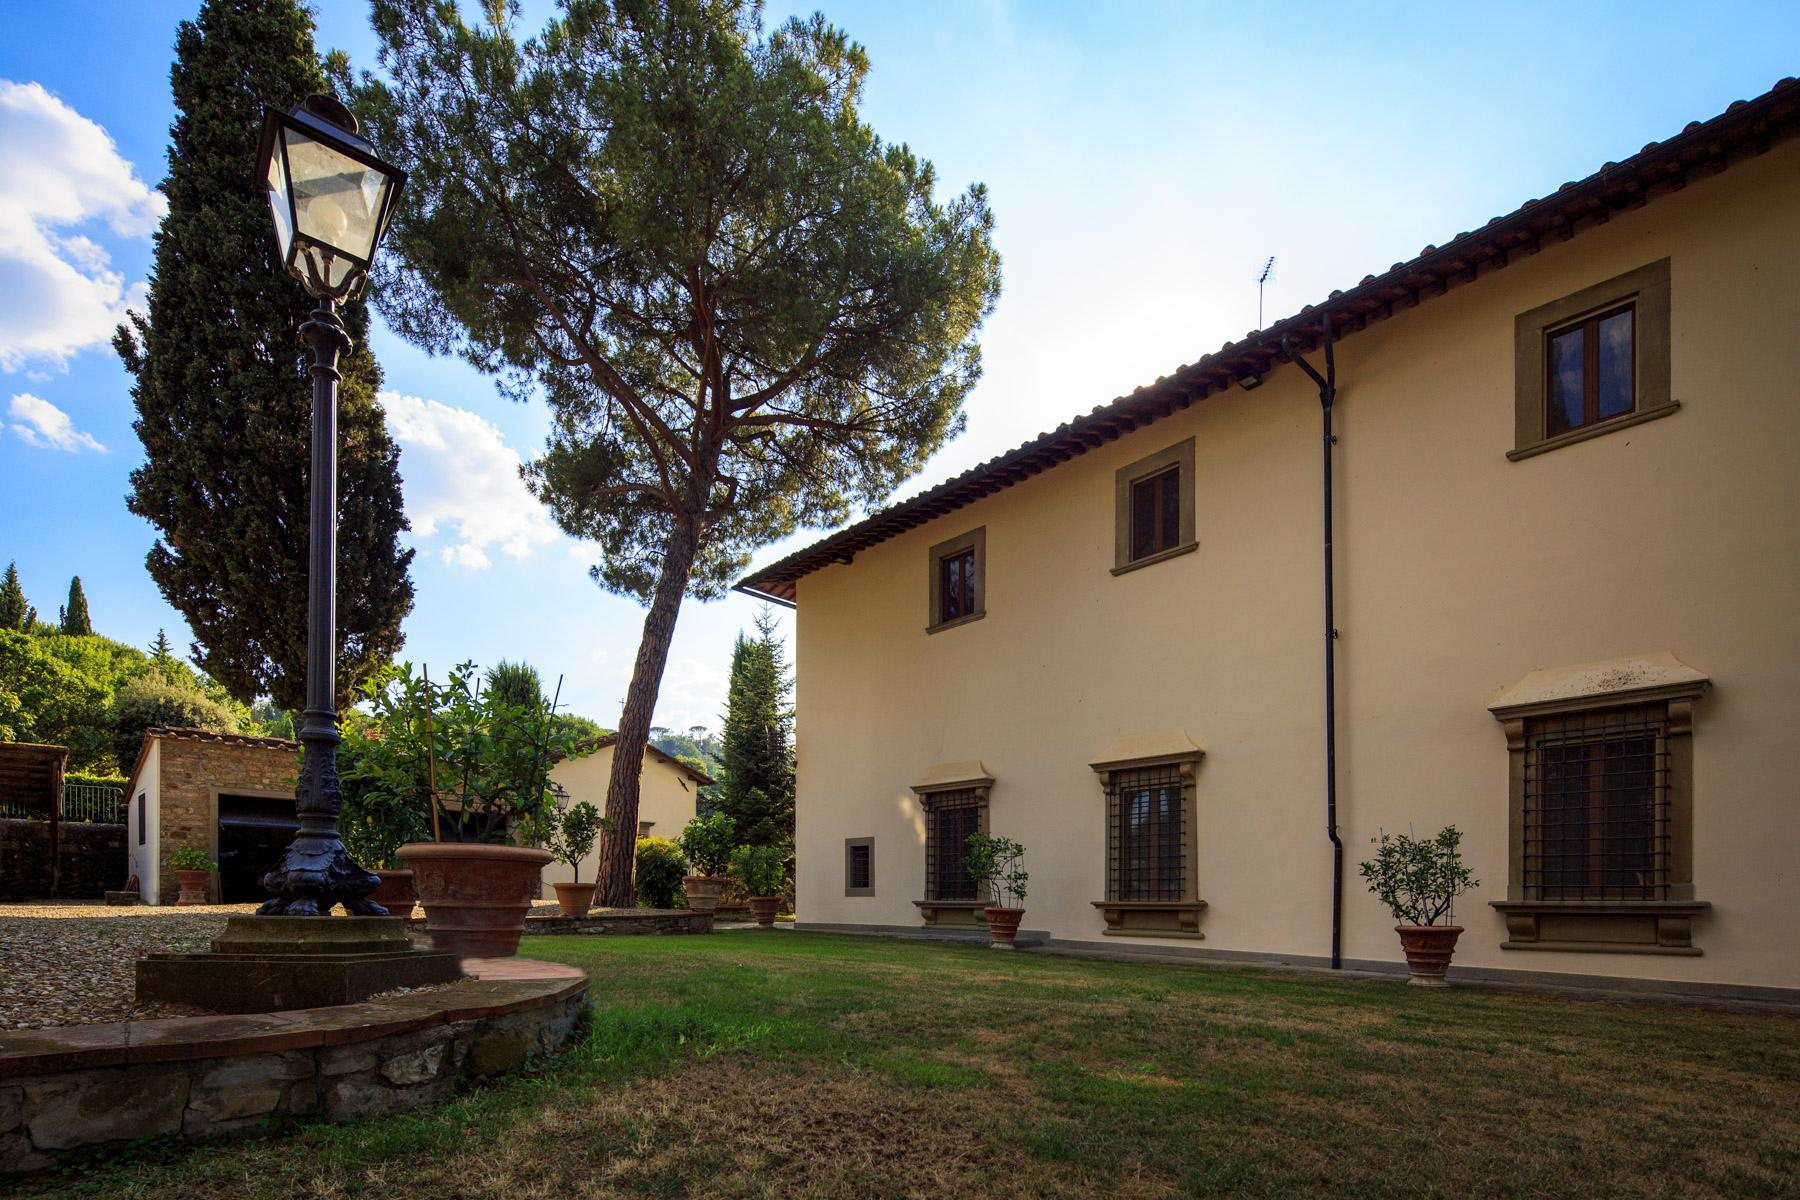 Historic Renaissance Villa with Private Hamlet on the Hills of Florence - 4